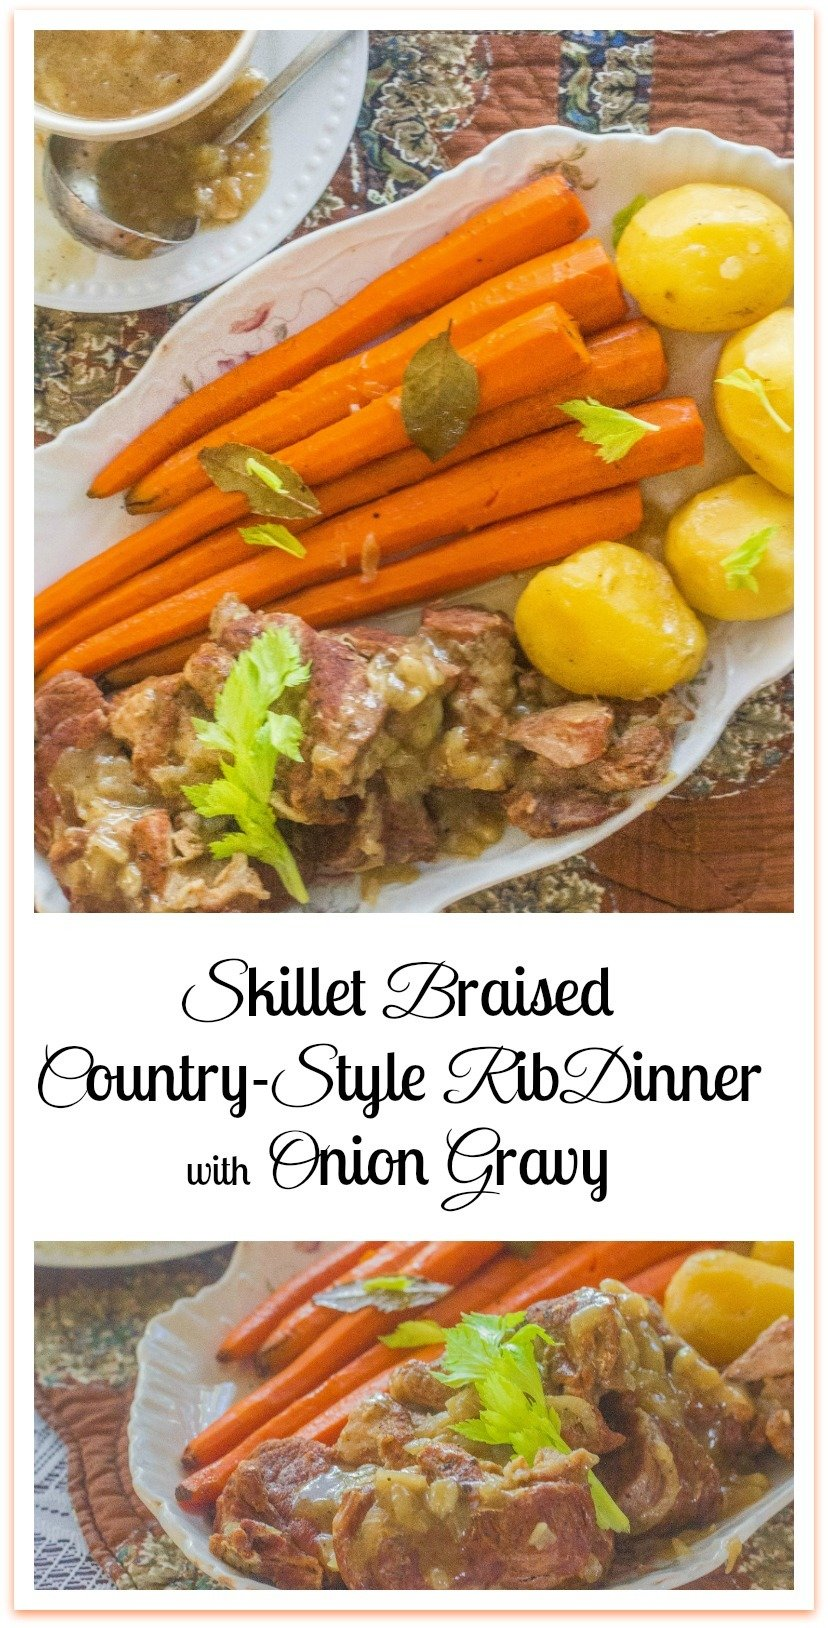 let's talk about  the Skillet Braised Country-Style Rib Dinner with Onion Gravy that I  fixed in my Lodge cast iron skillet.  It's a one pot skillet meal that's  so good it will make you want to swallow your tongue. The pork is tender like butter and the gravy has a flavor you'll crave for the rest of your natural life. #SkilletBraised #CountryStyleRibDinner